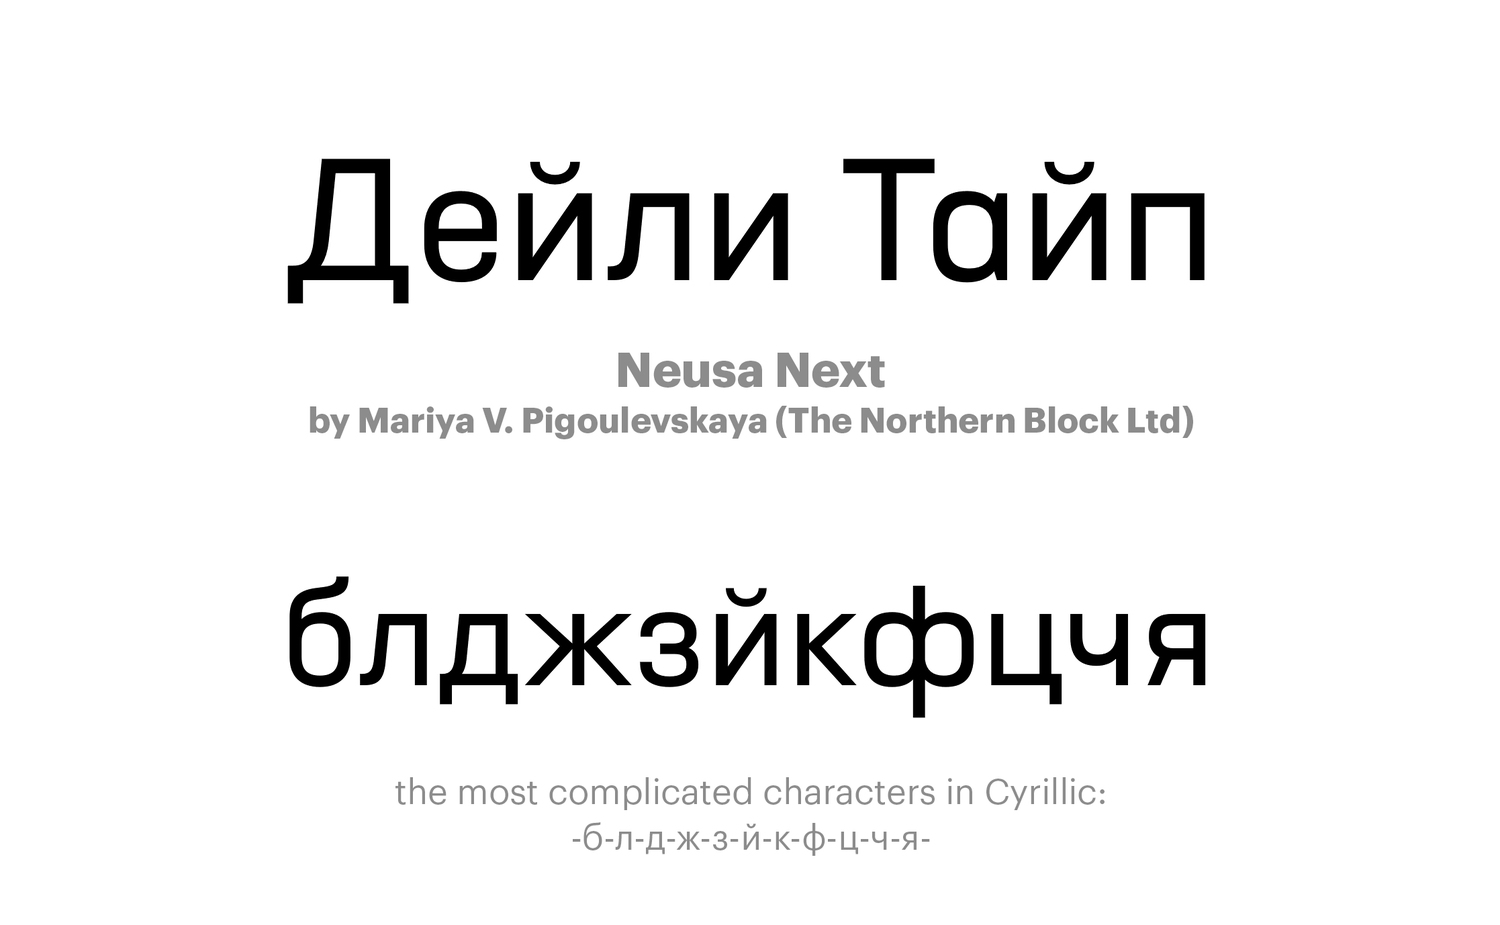 Neusa-Next-by-Mariya-V.-Pigoulevskaya-(The-Northern-Block-Ltd)